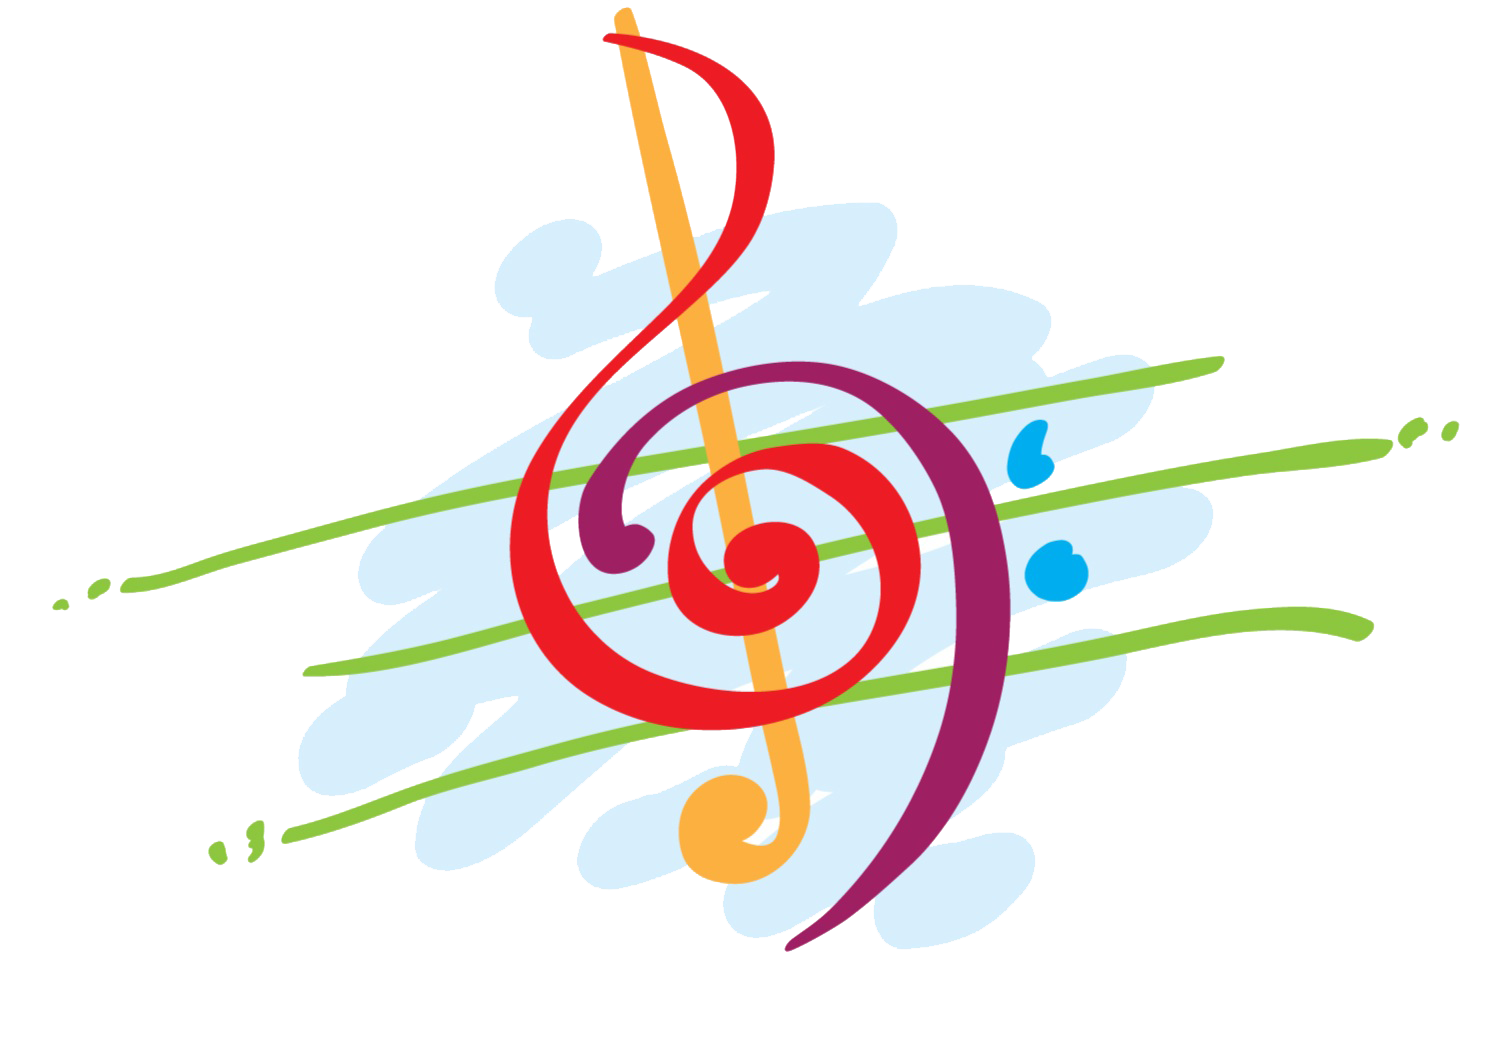 Music Png Photos - Music, Transparent background PNG HD thumbnail